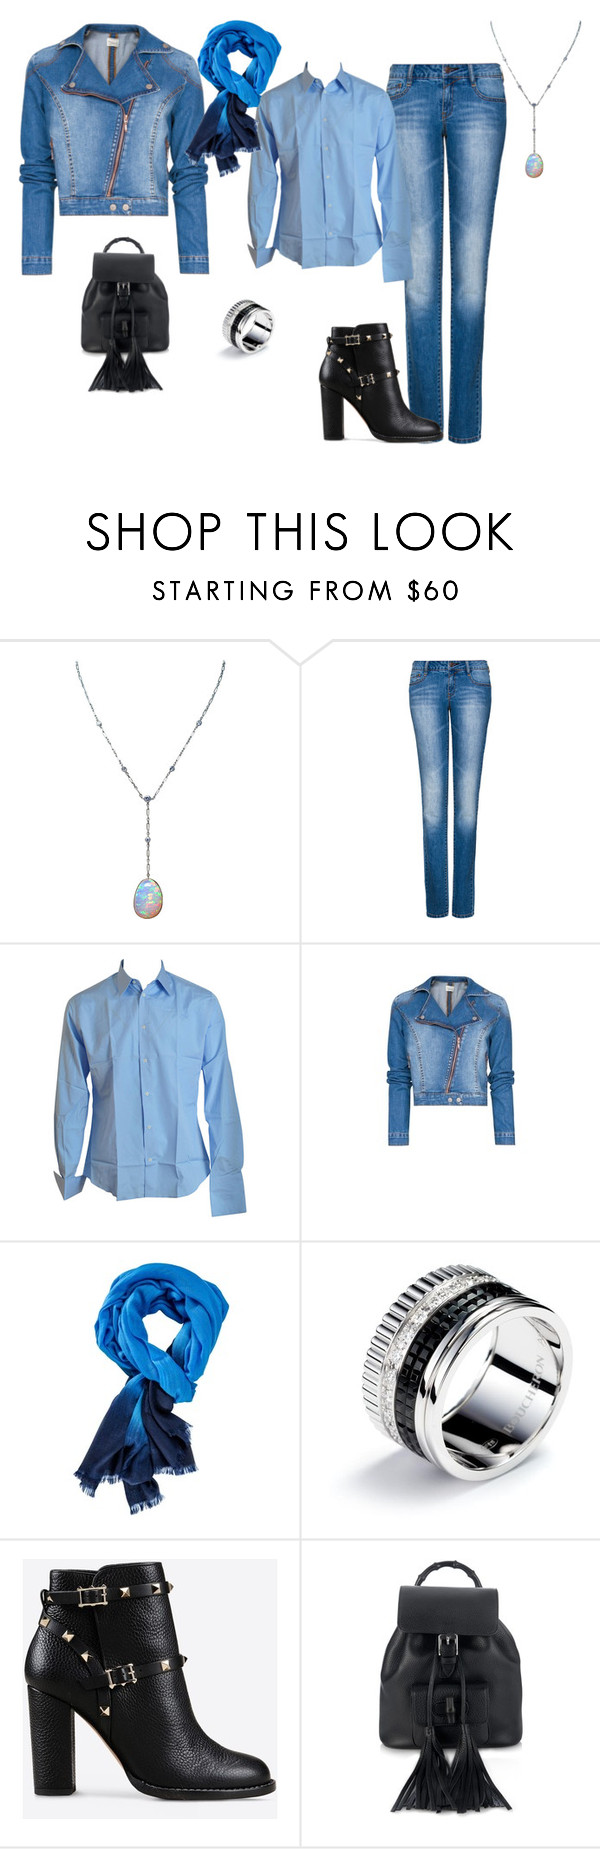 """""""FW - D - JEANS, SHIRT, JACKET, SCARF, BOOTS - DENIM & BLUES"""" by laliquemurano on Polyvore featuring MANGO, Valentino and Gucci"""